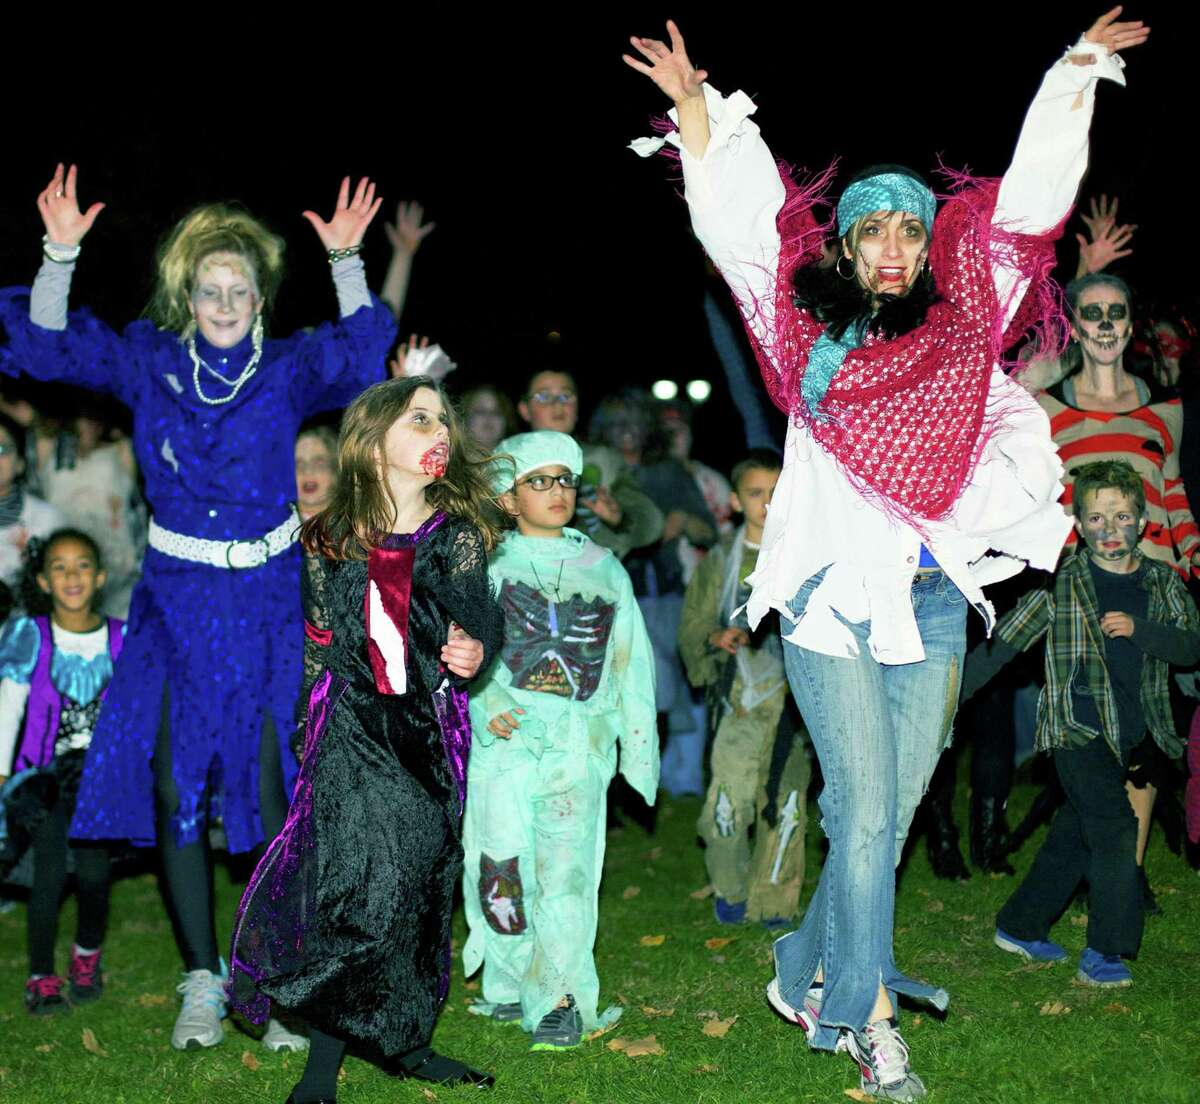 Several Halloween activities are planned for residents of New Milford.